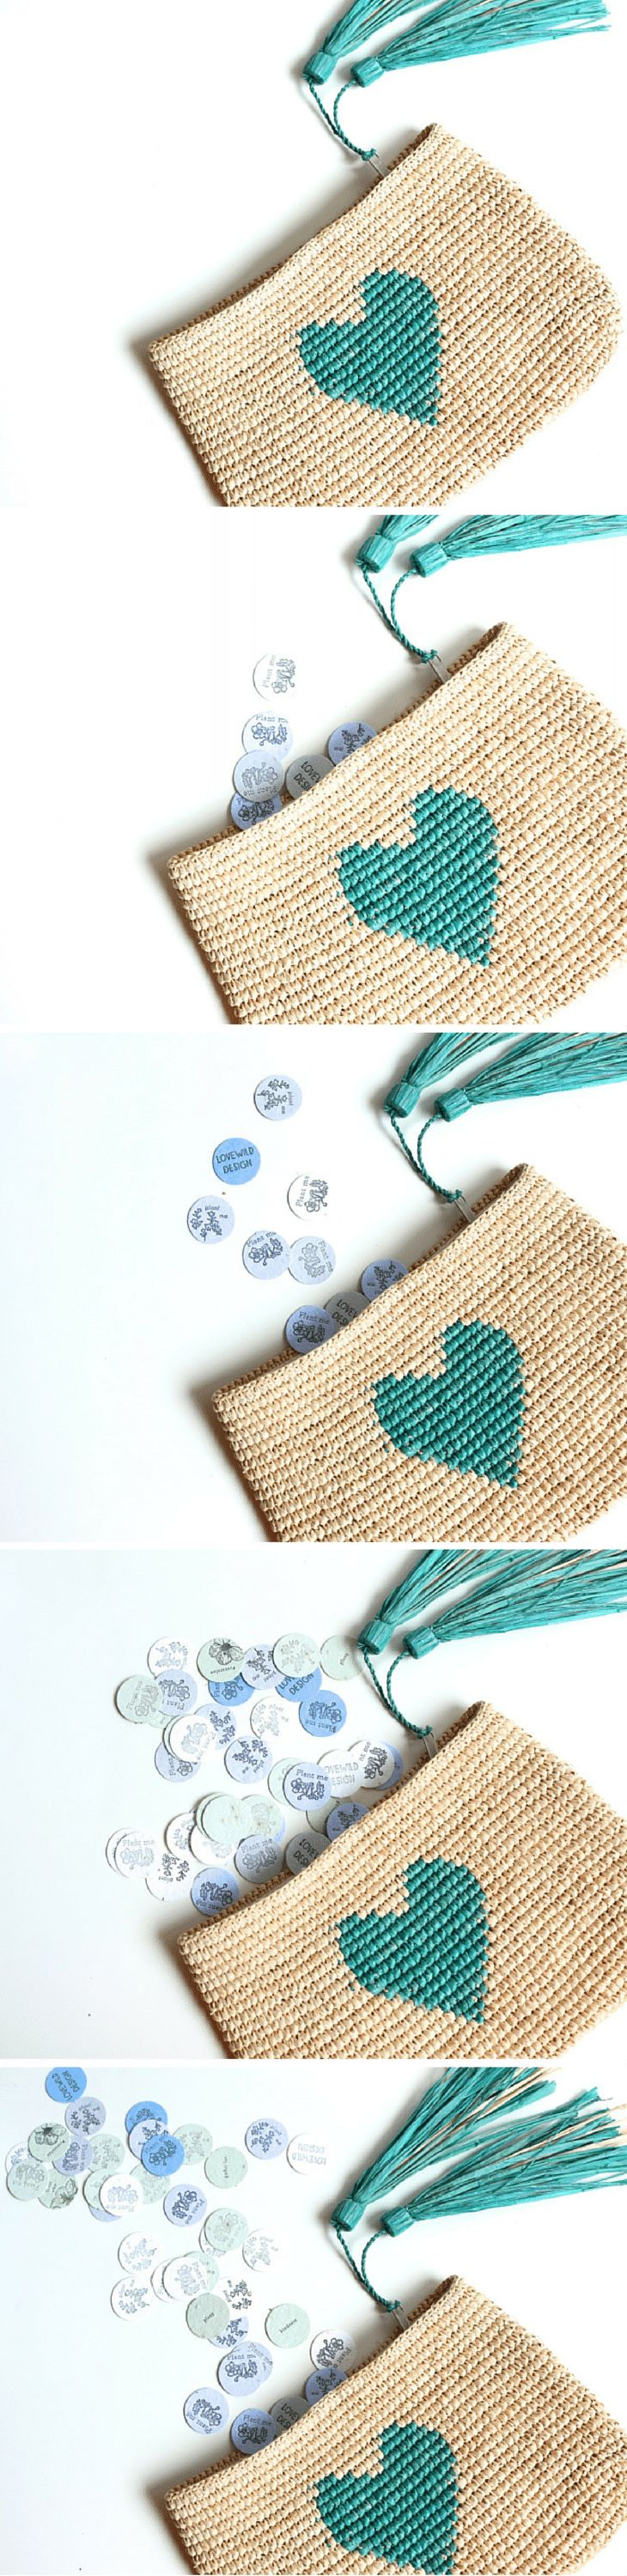 this little heart clutch would be a great gift for the bride or bridesmaids!